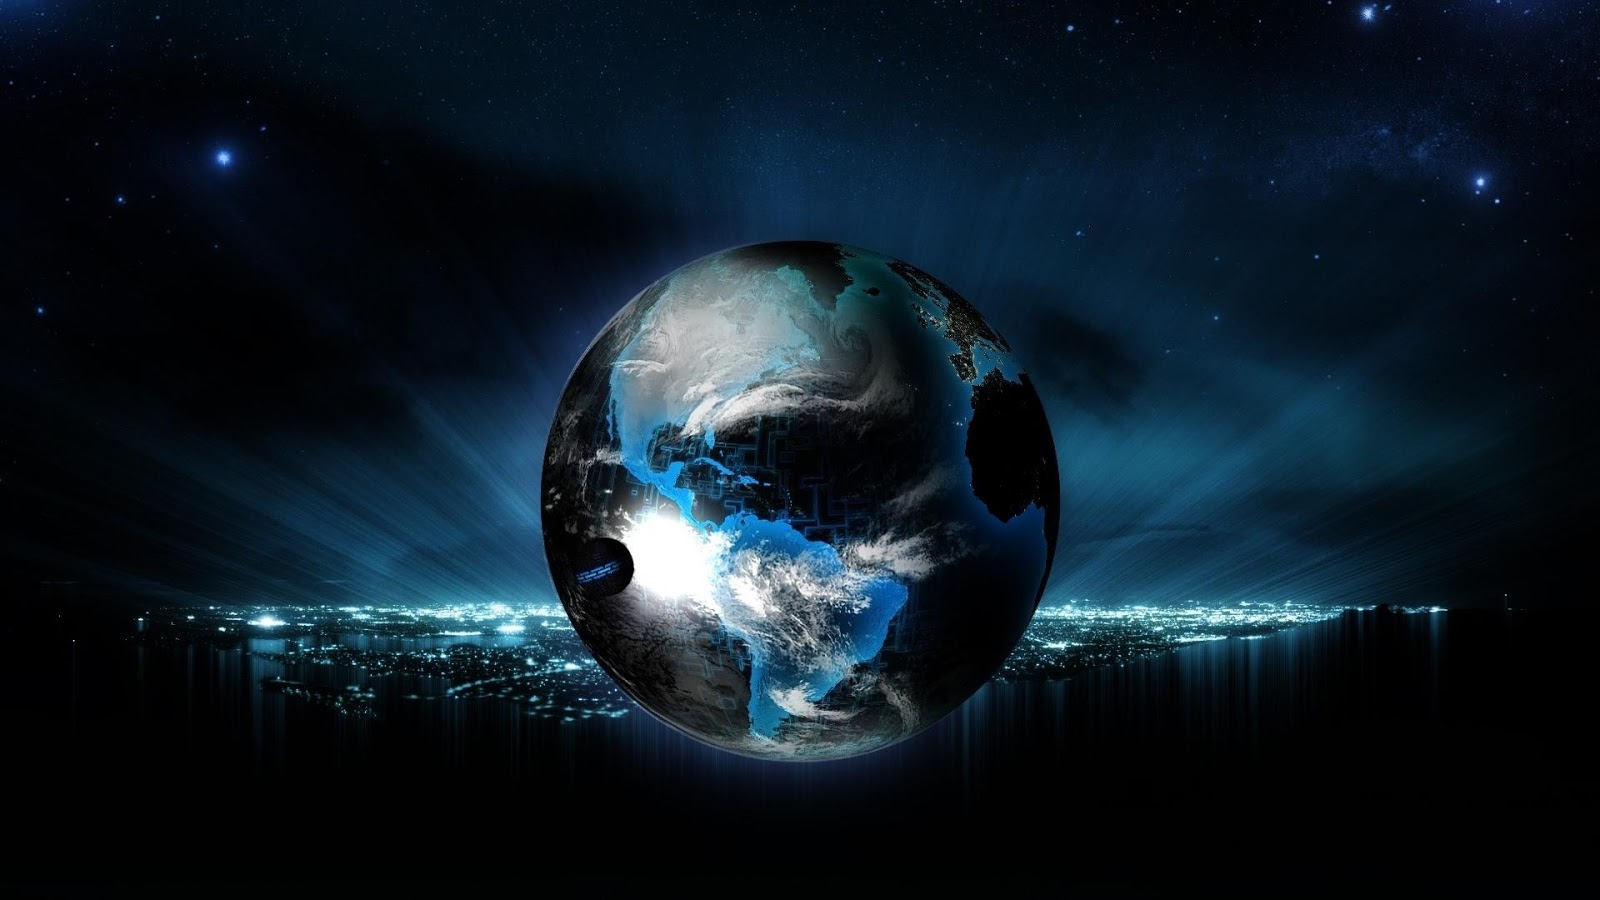 Hd Space Wallpapers 1080p: Earth Wallpaper HD 1080p